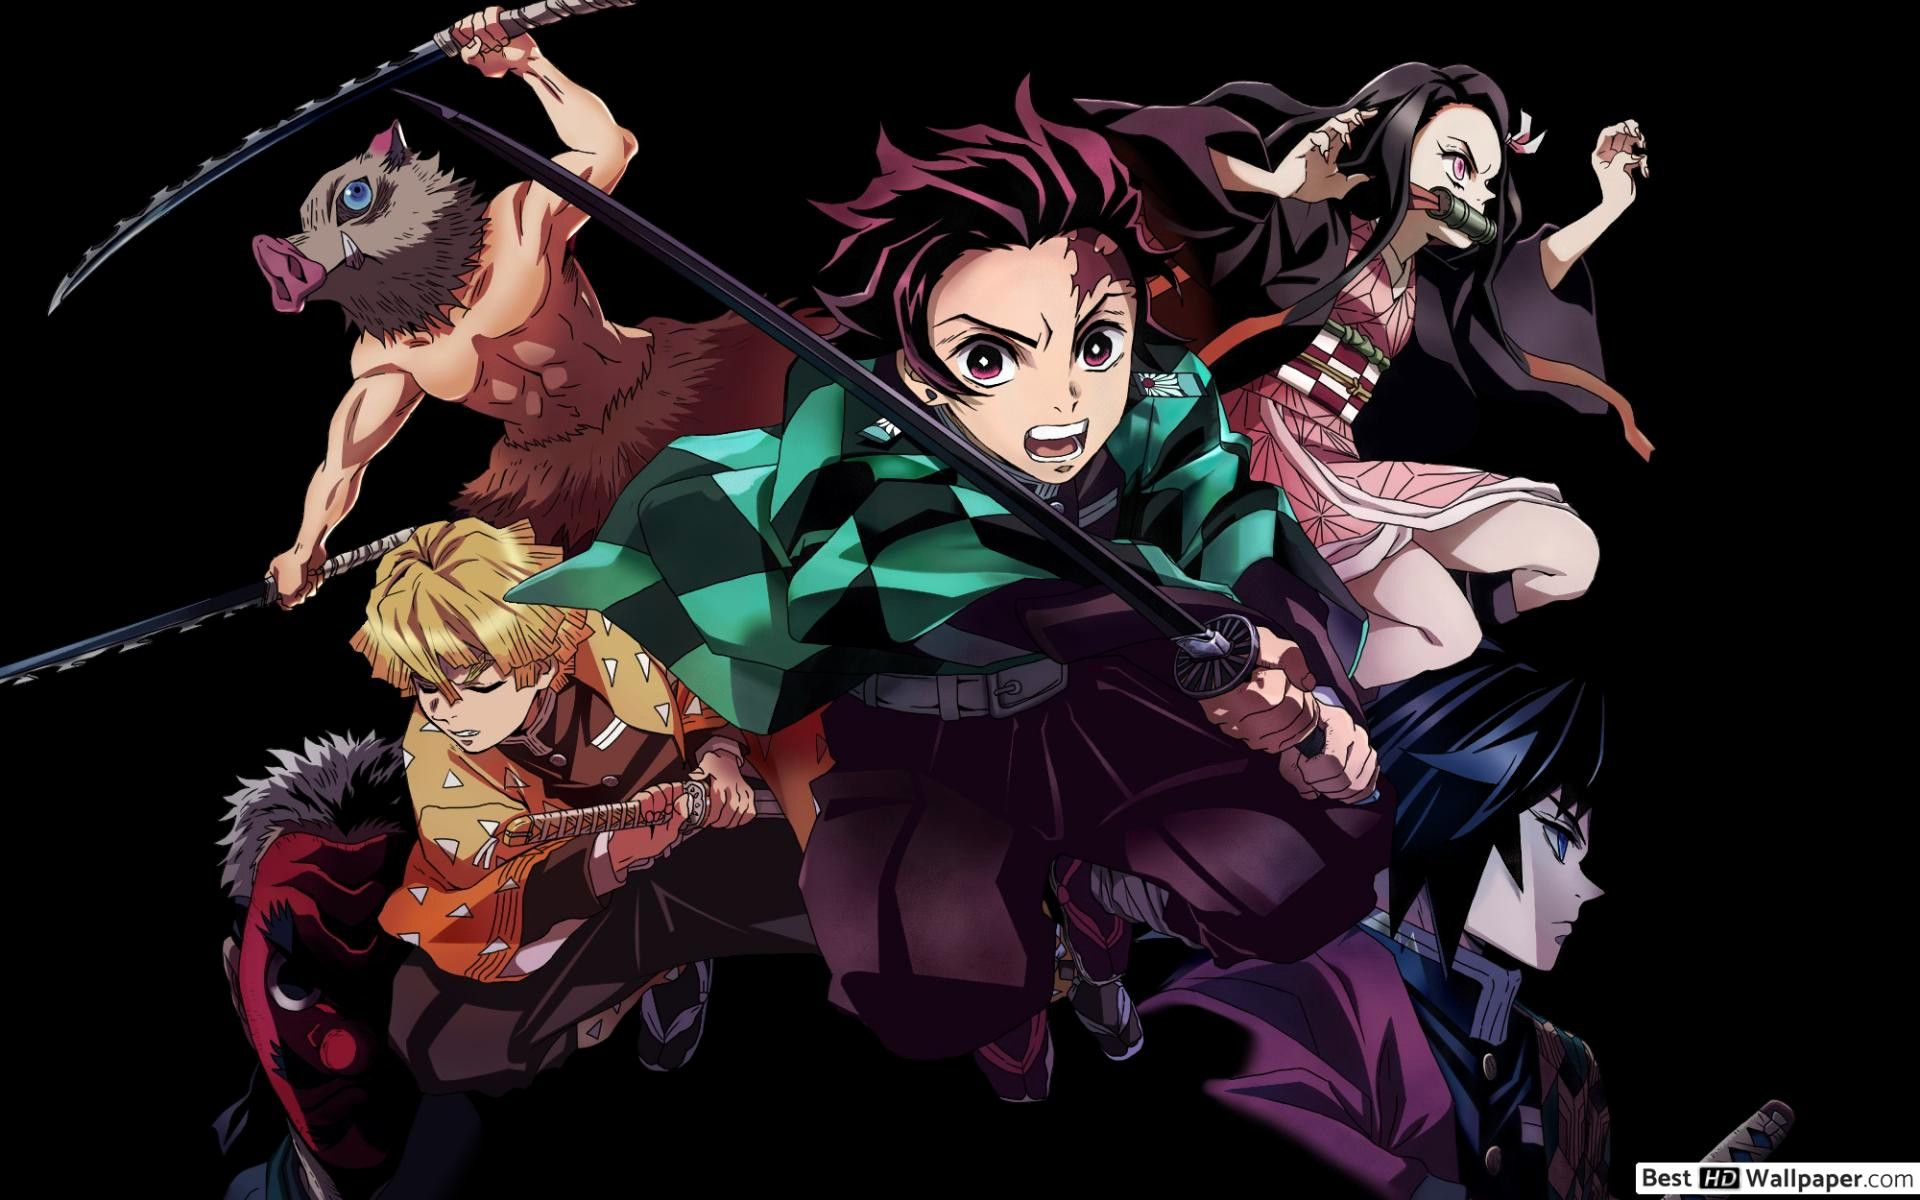 Best Of Demon Slayers Hd Wallpaper (With images) Anime